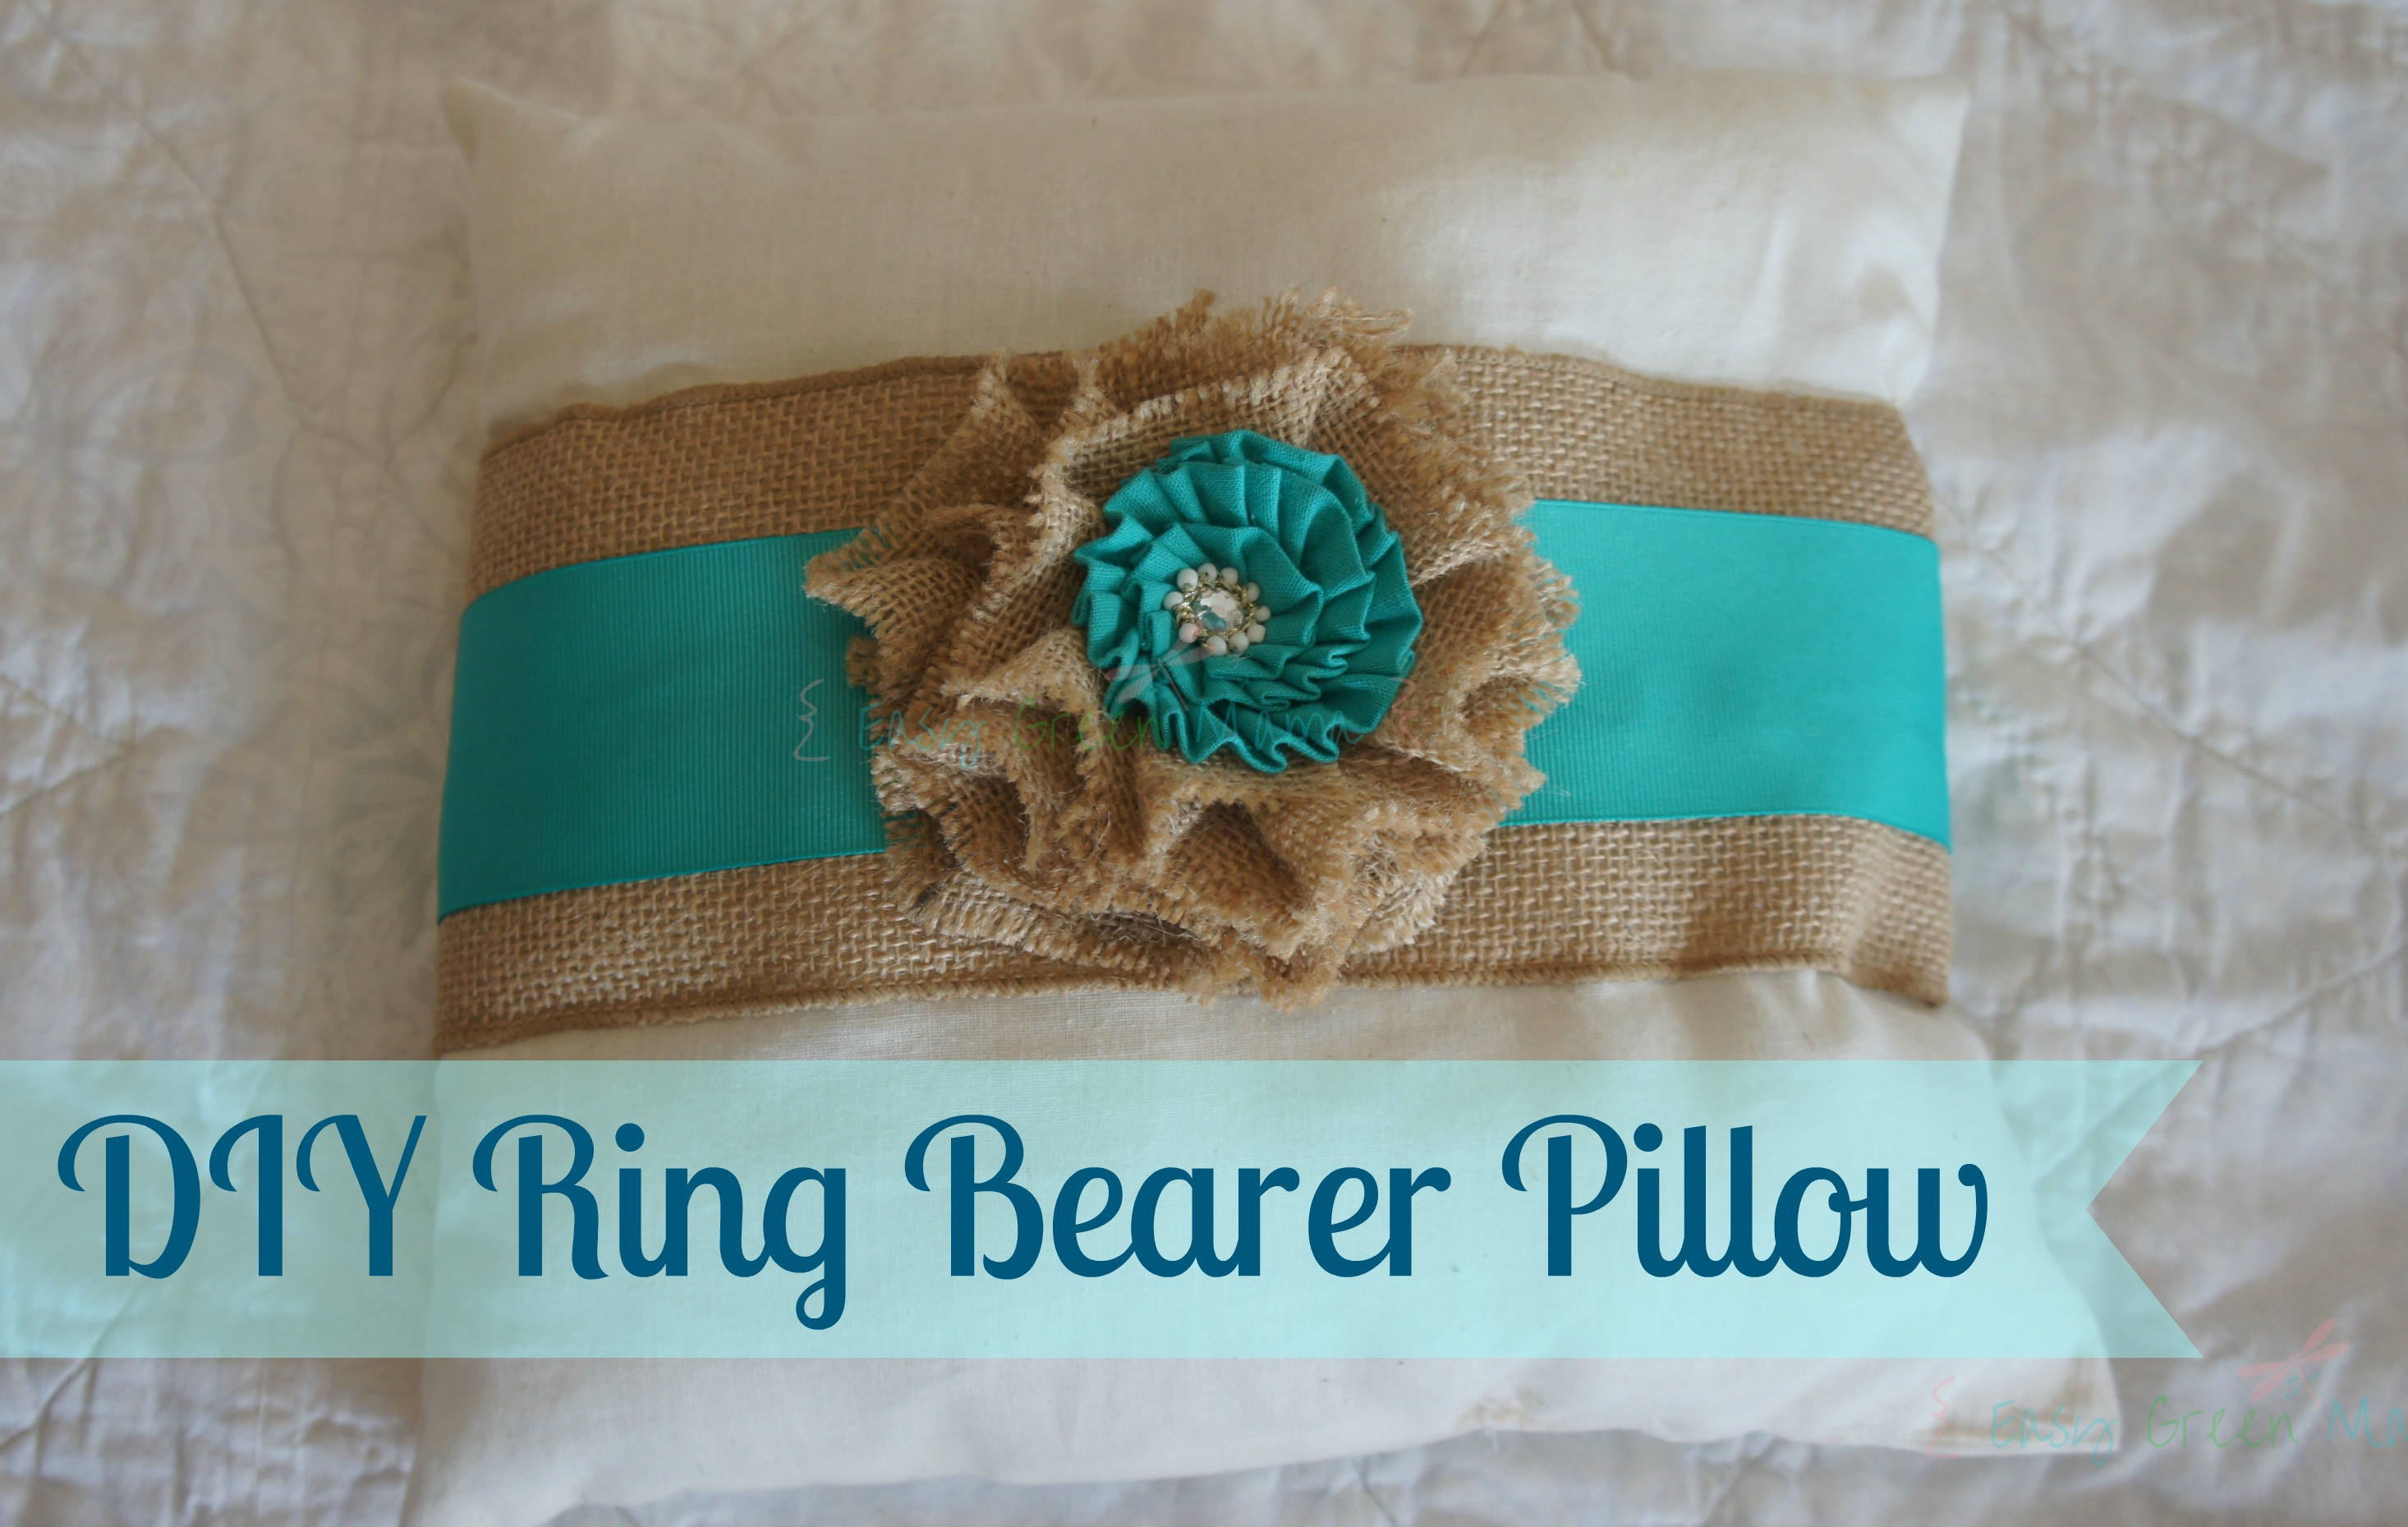 Diy ring bearer pillow cheap easy rays of bliss for Diy ring bearer